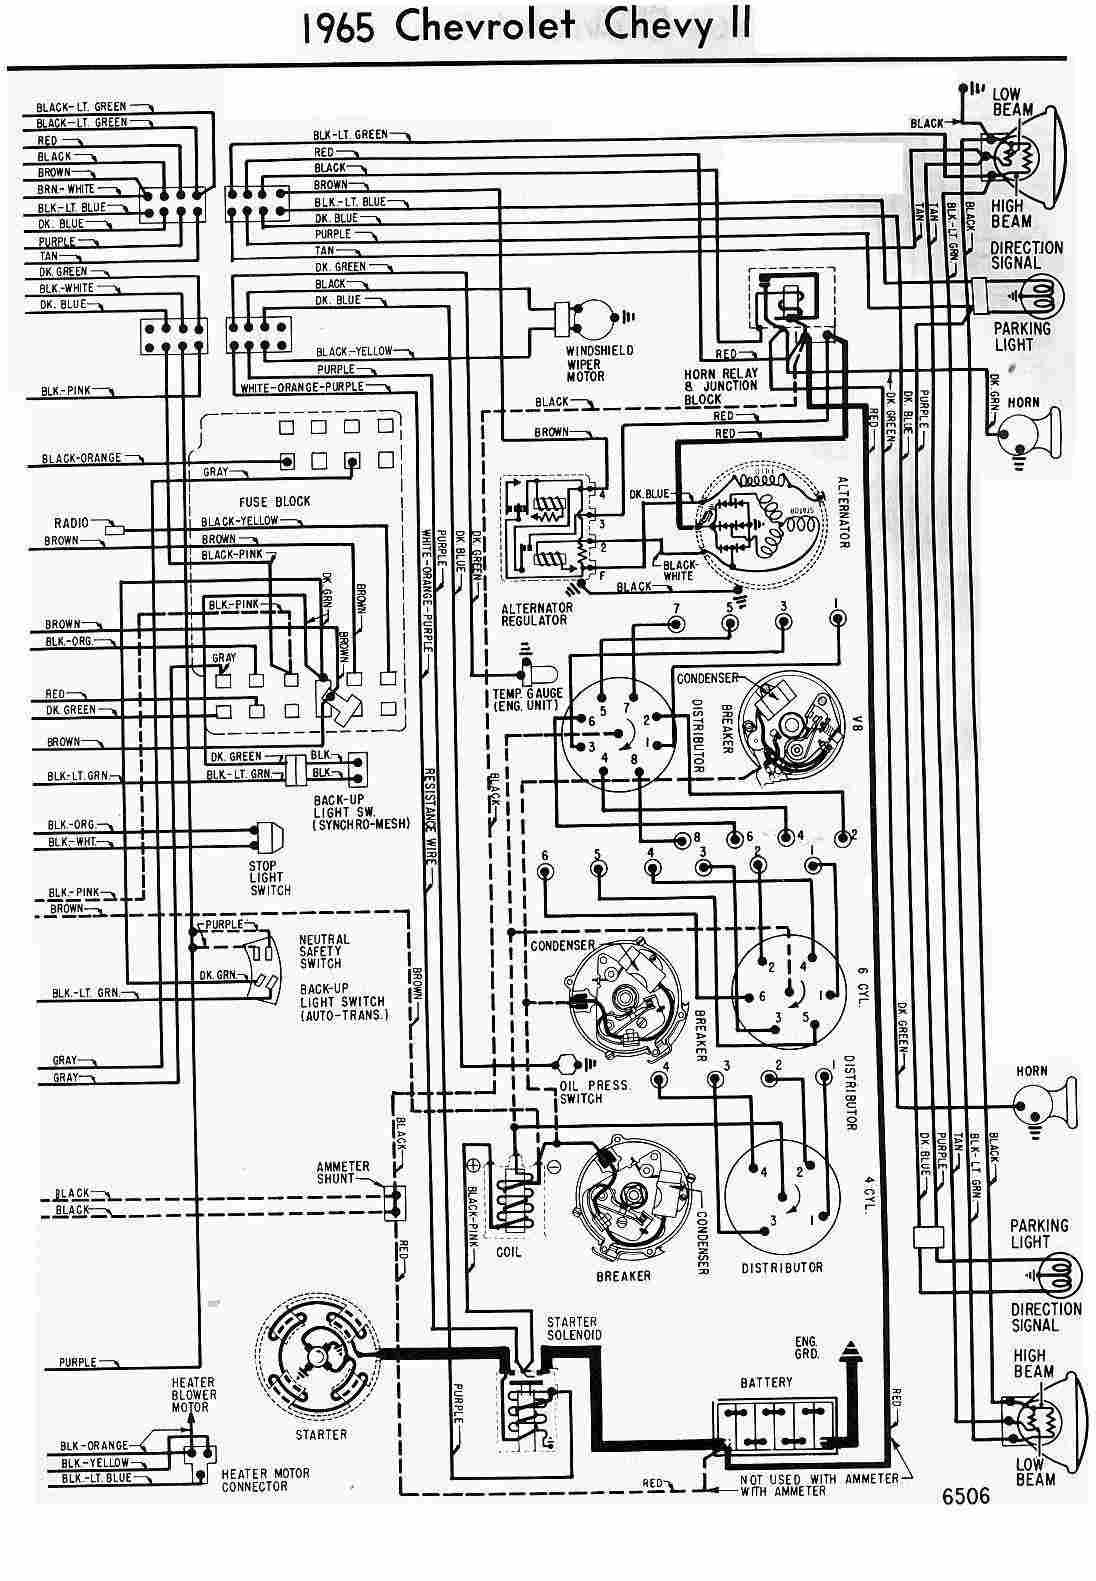 Wiring Diagram For 67 Chevelle Malibu Car Diagrams Explained 1969 65 Trusted U2022 Rh Autoglas Stadtroda De Instrument 66